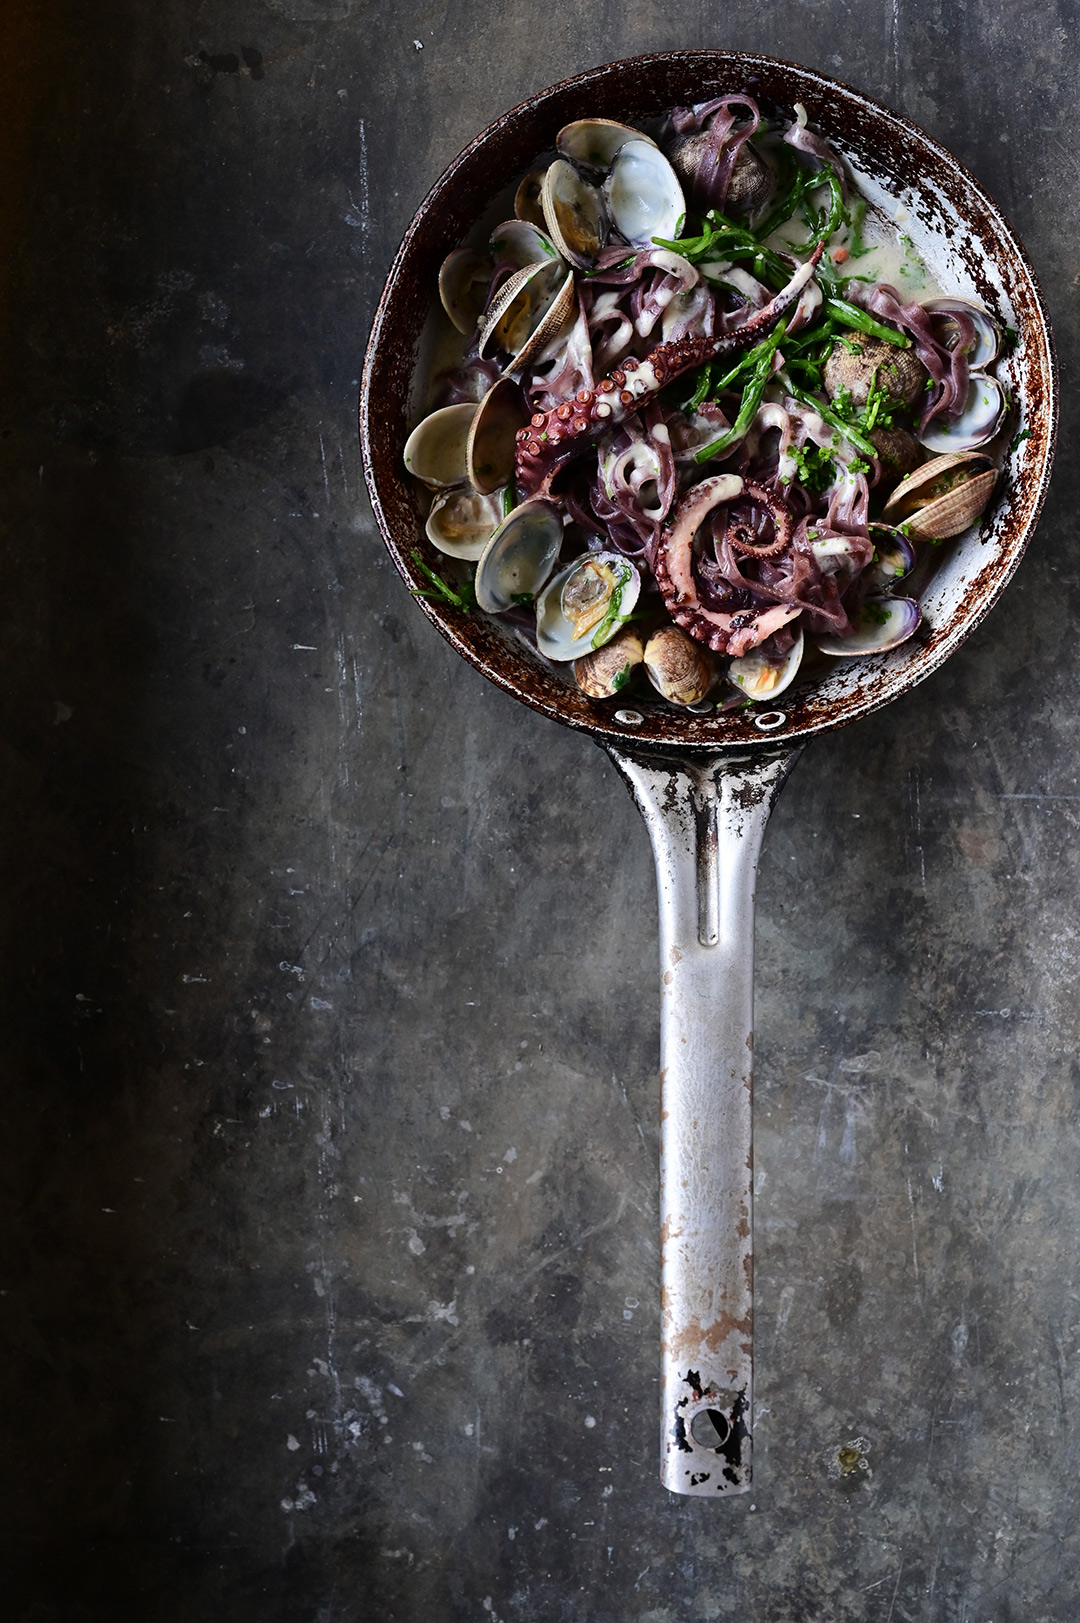 serving dumplings   Creamy garlic black pasta with clams and octopus